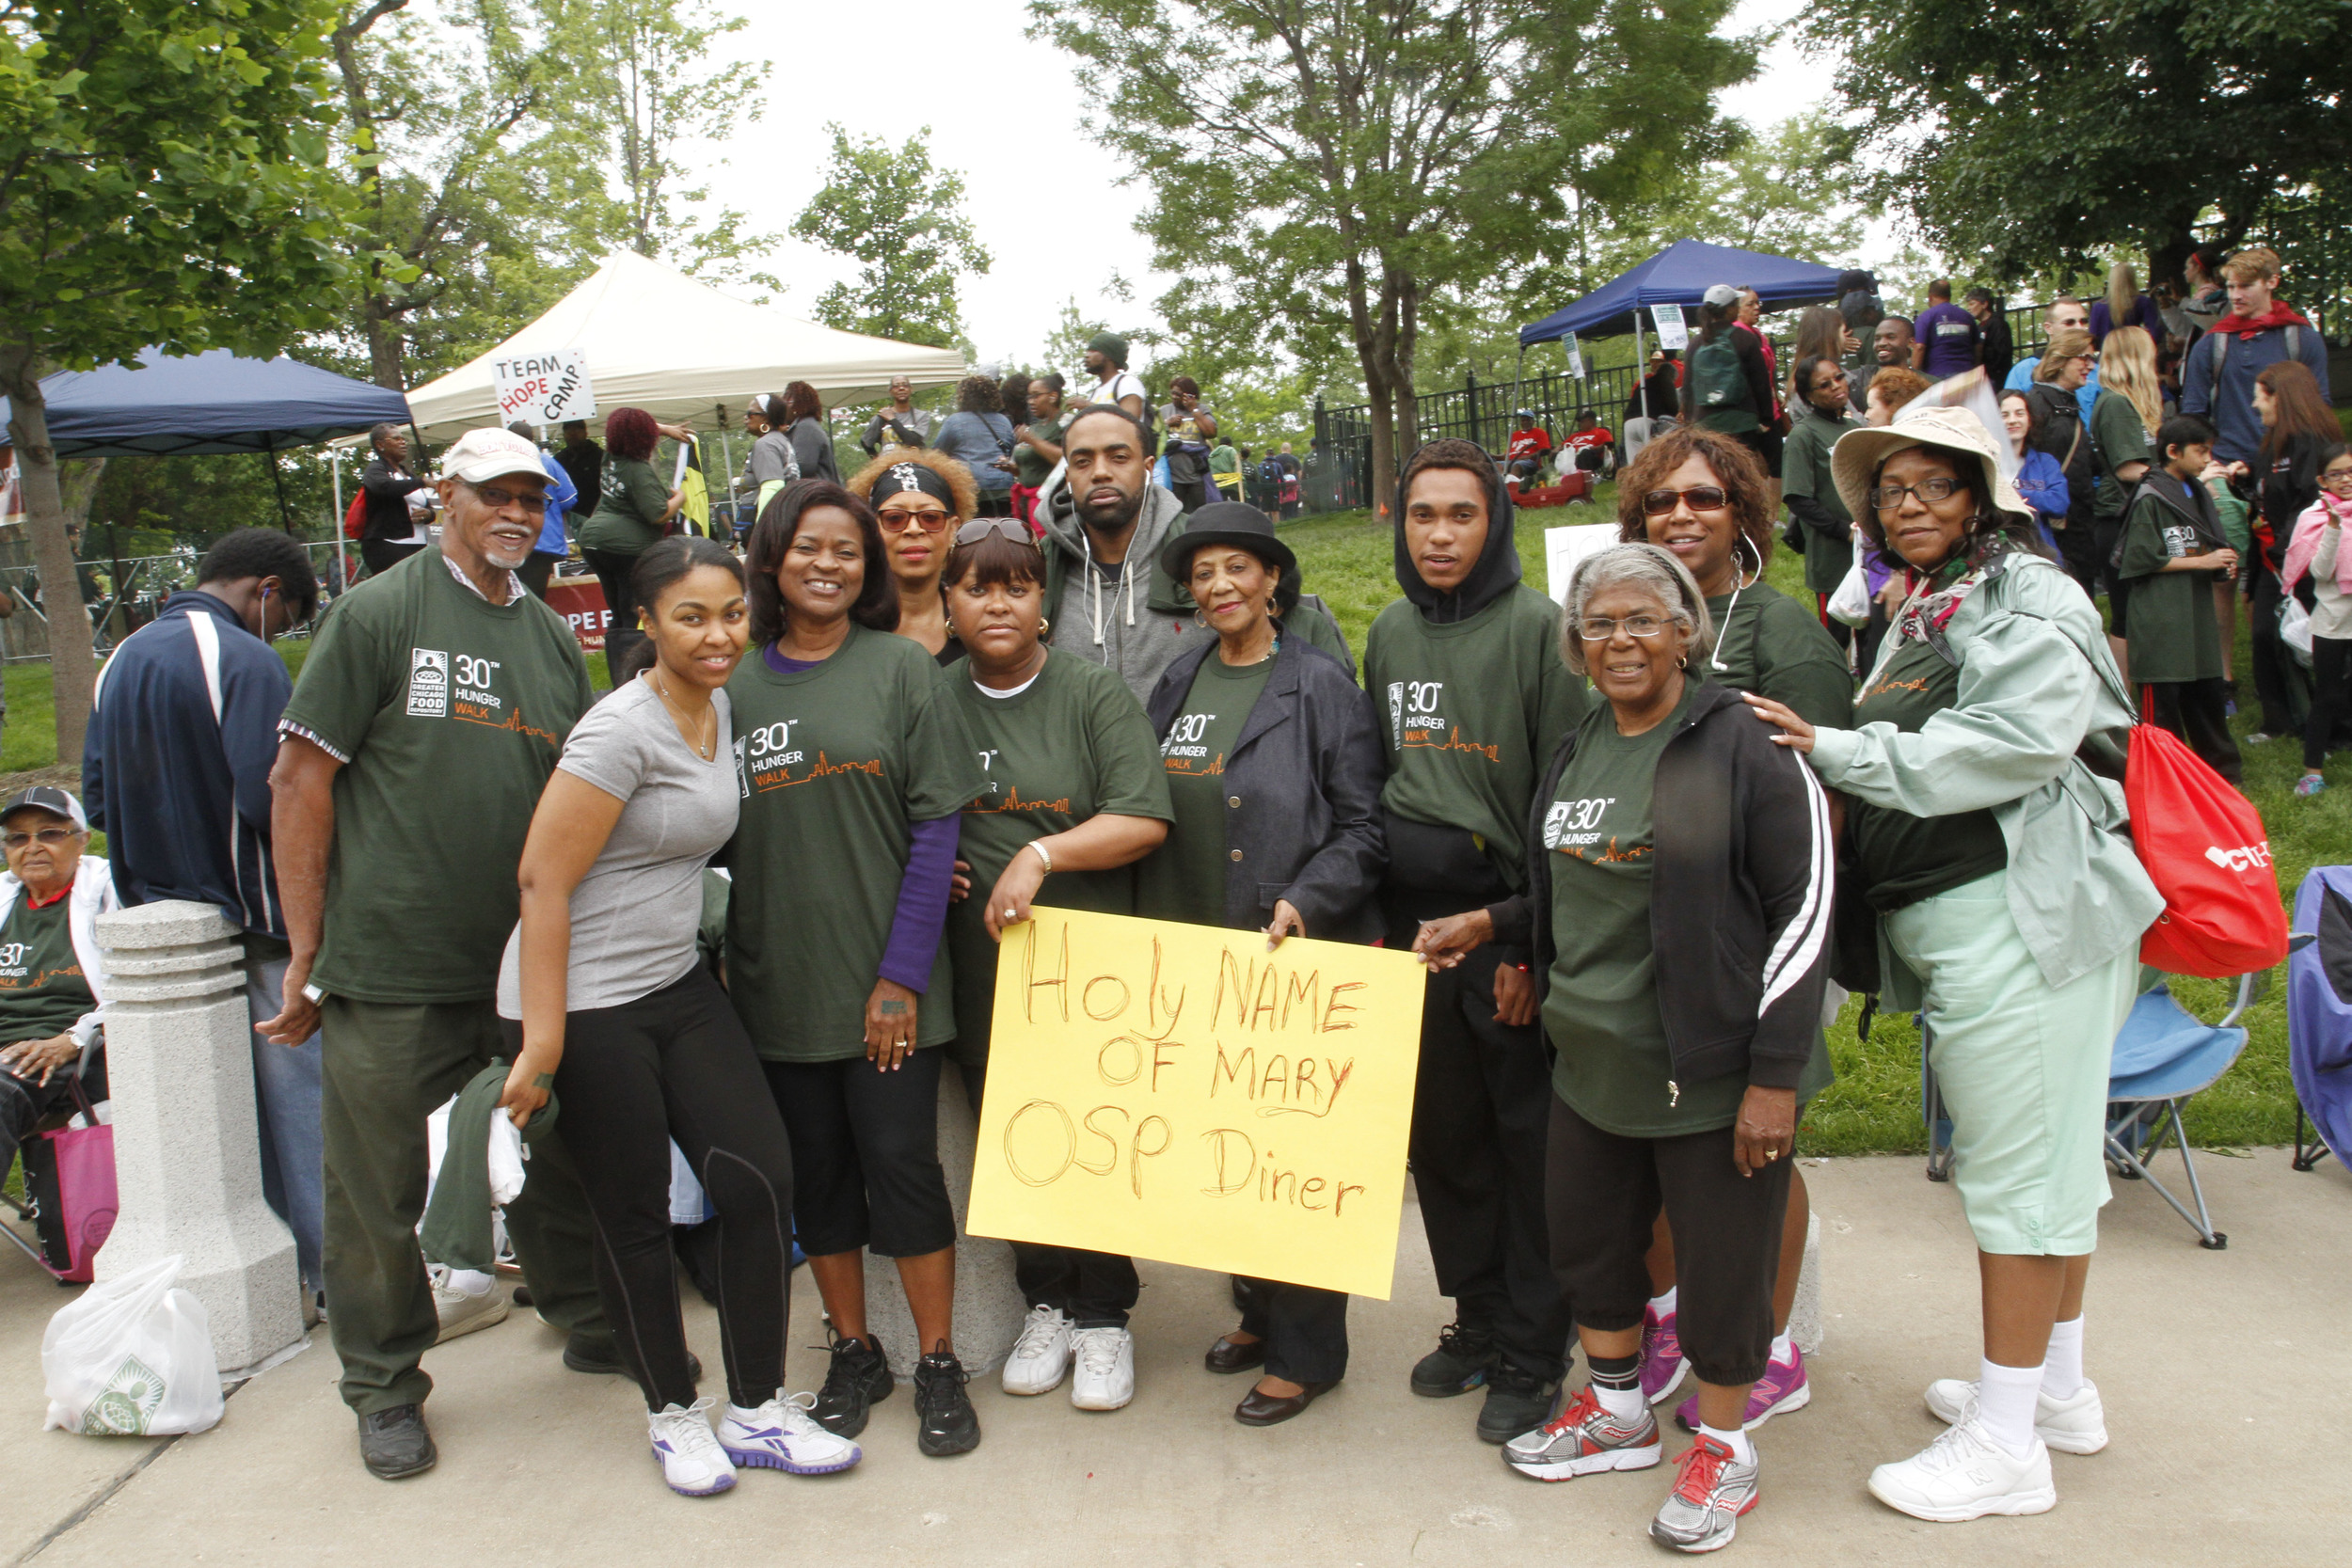 Volunteers attend the Greater Chicago Food Depository Hunger Walk to support OSP Diner.